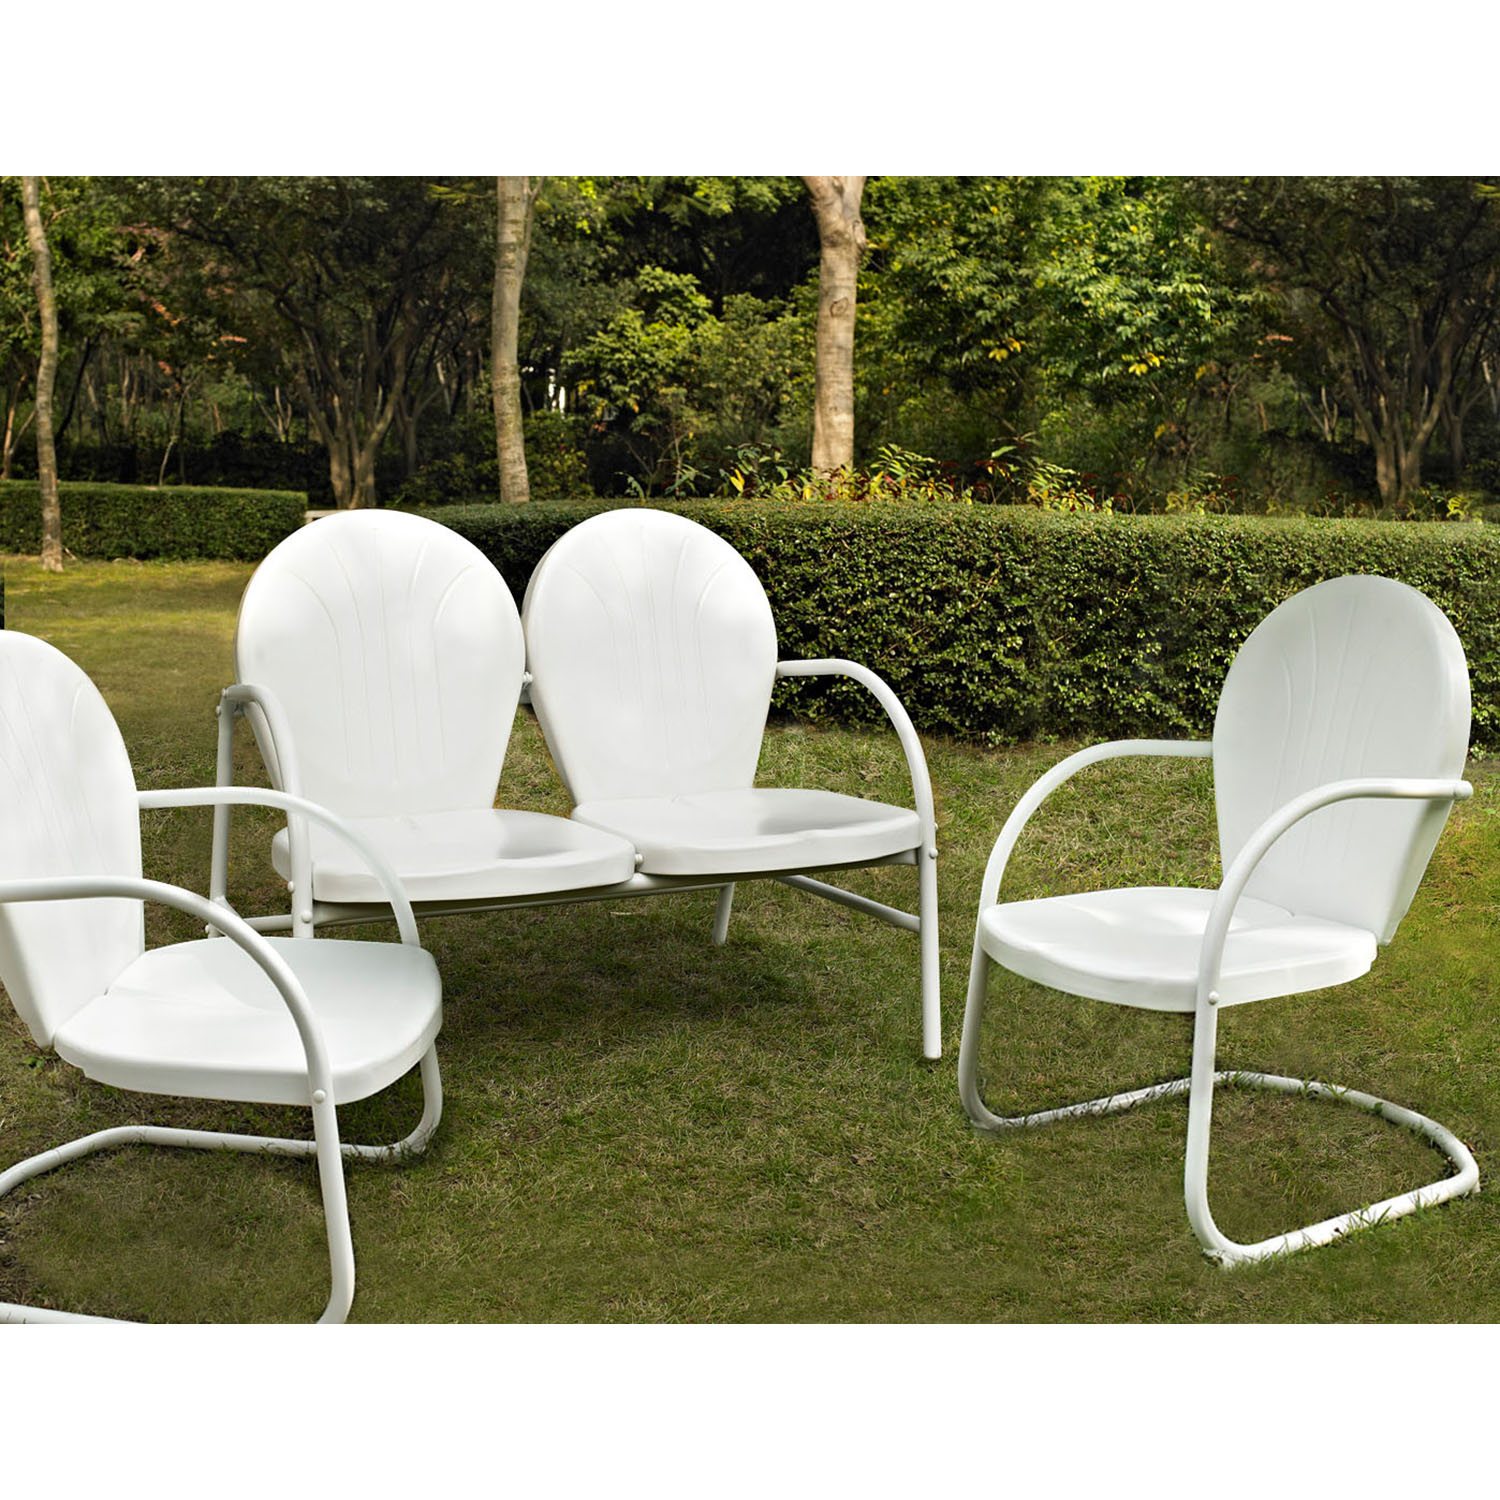 Griffith 3-Piece Conversation Seating Set - 2 Chairs and Loveseat, White - CROS-KO10002WH